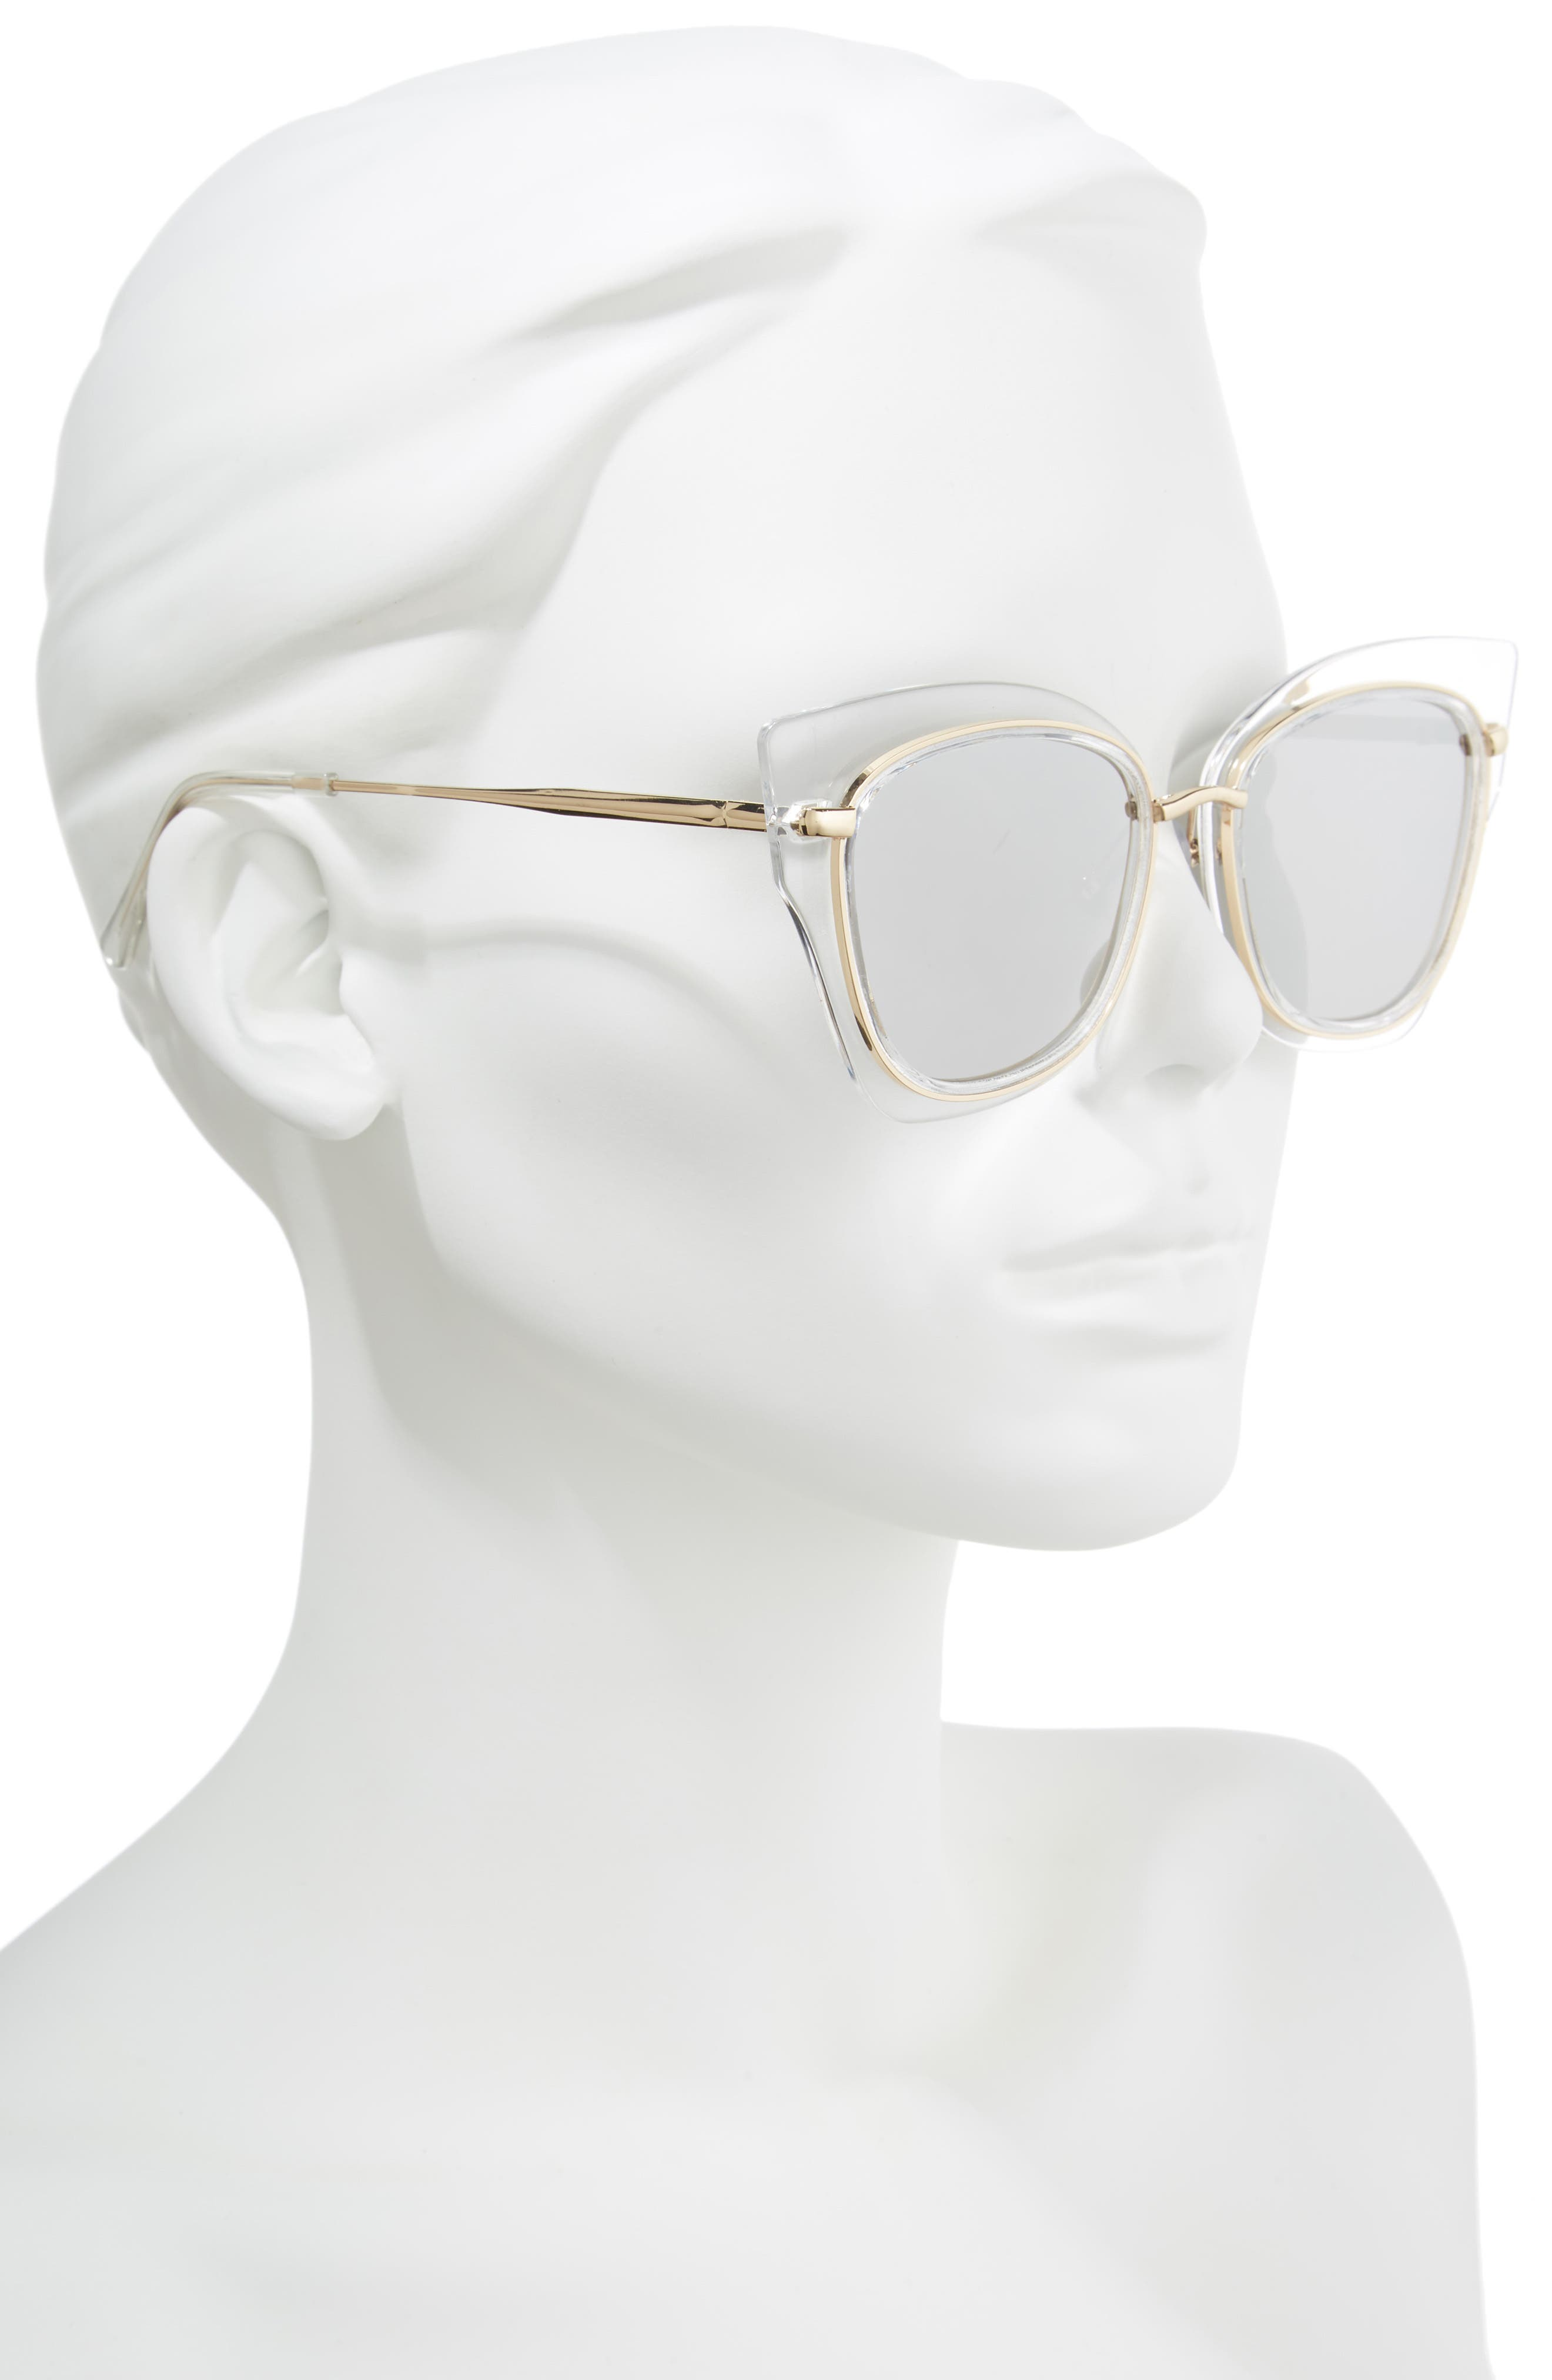 55mm Clear Winged Cat Eye Sunglasses,                             Alternate thumbnail 2, color,                             CLEAR/ GOLD